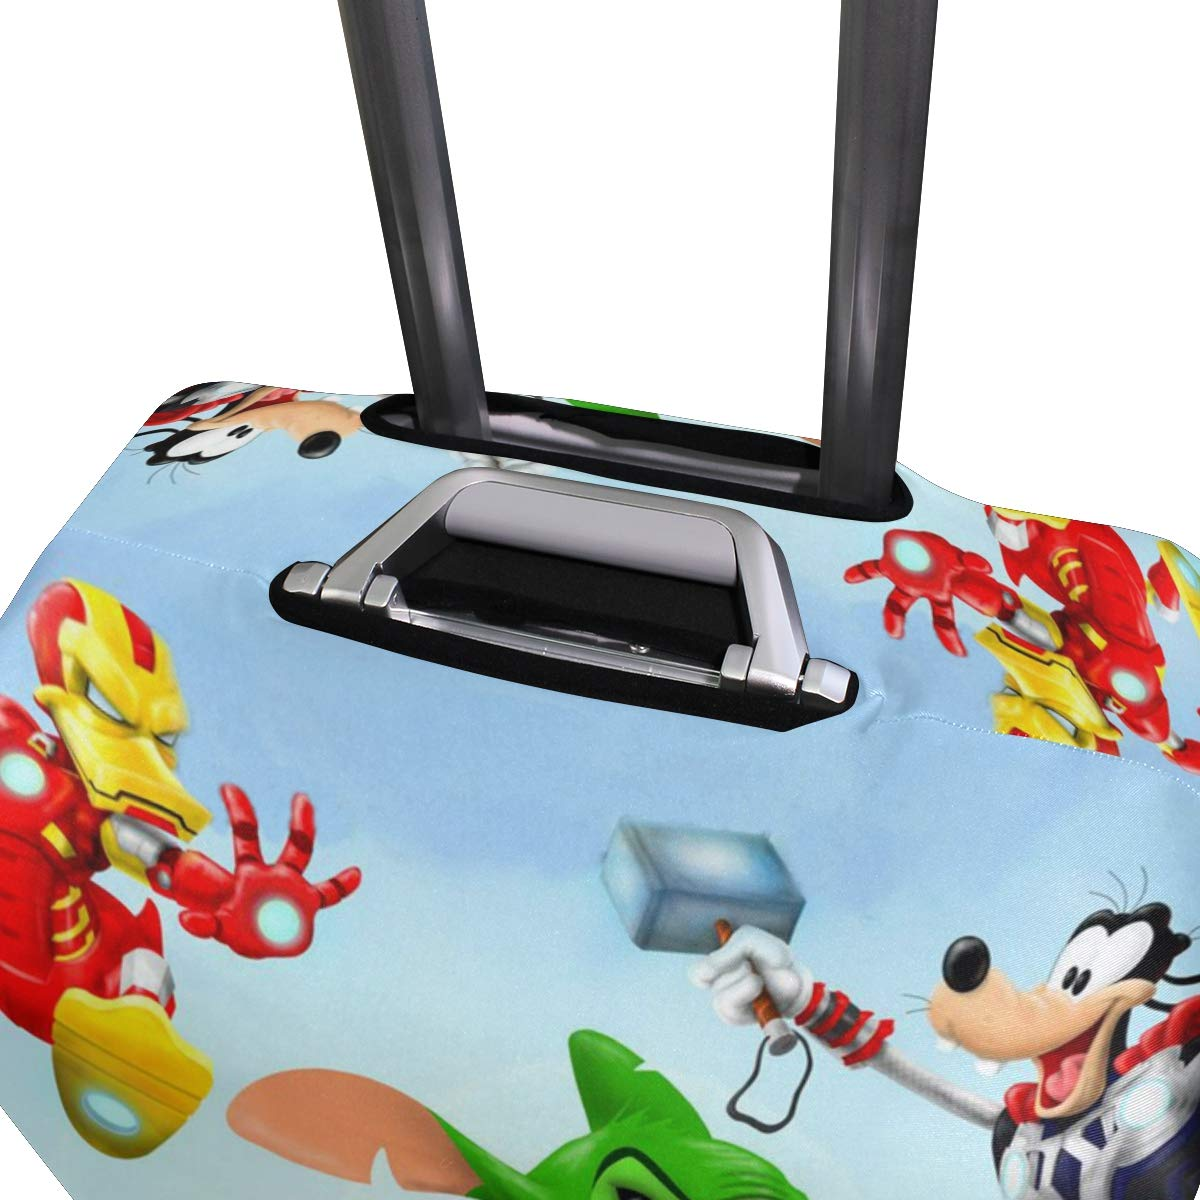 Travel Luggage Cover Super Avengers Captain America Mikey Mouse Stitch Hulk Duck Iron Man Suitcase Protector Fits 26-28 Inch Washable Baggage Covers